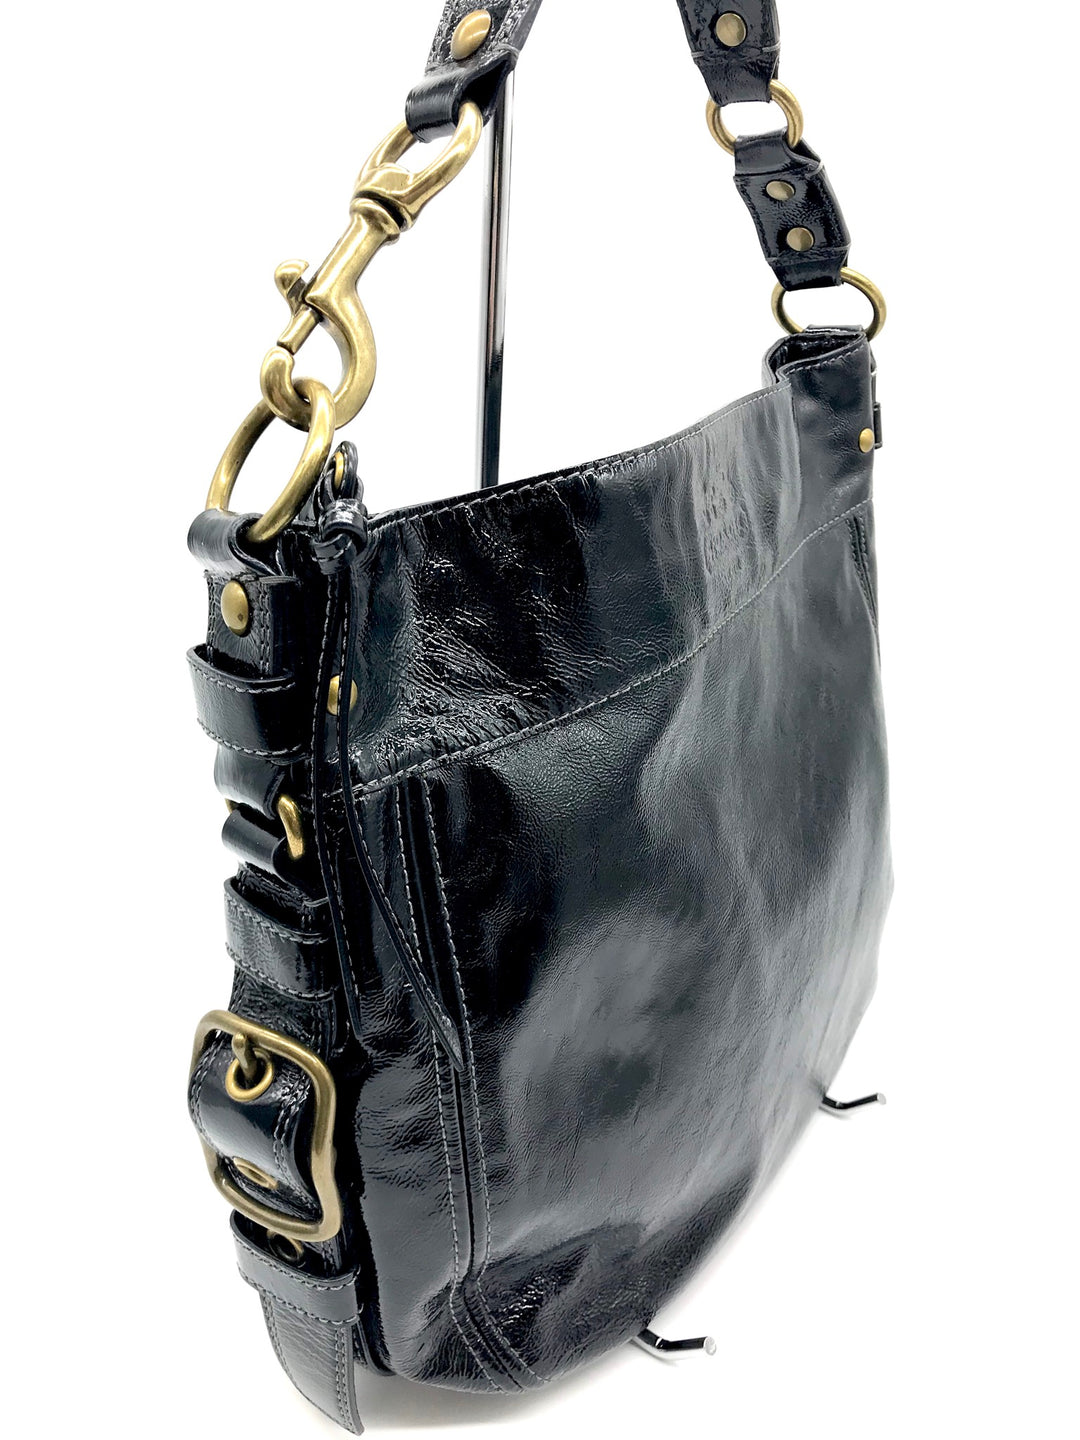 Photo #1 - BRAND: COACH <BR>STYLE: HANDBAG DESIGNER <BR>COLOR: BLACK <BR>SIZE: LARGE <BR>SKU: 262-26275-64721<BR>GENTLE WEAR SHOWS, CRACKS AROUND THE EDGES OF THE STRAP AND SOME STAIN SPOTS ON THE INTERIOR LINING. OVERALL IN GOOD SHAPE AND CONDITION. <BR>DESIGNER BRAND - FINAL SALE